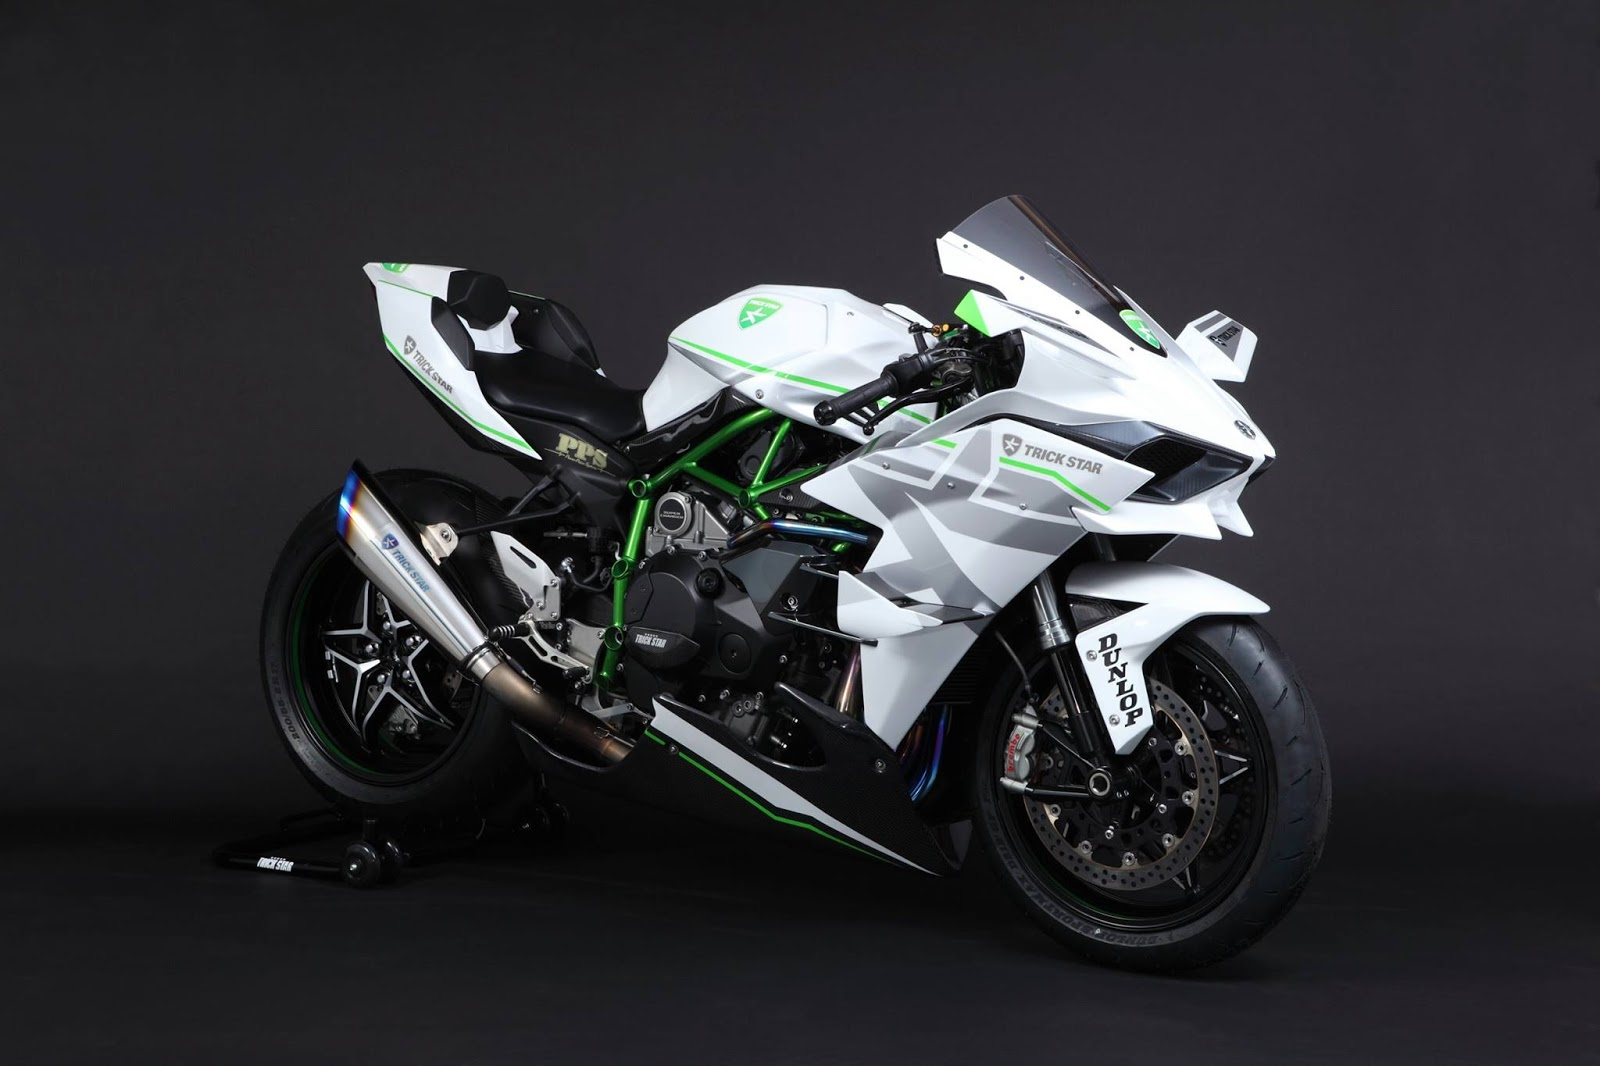 Kawasaki H2r Turbo Top Speed